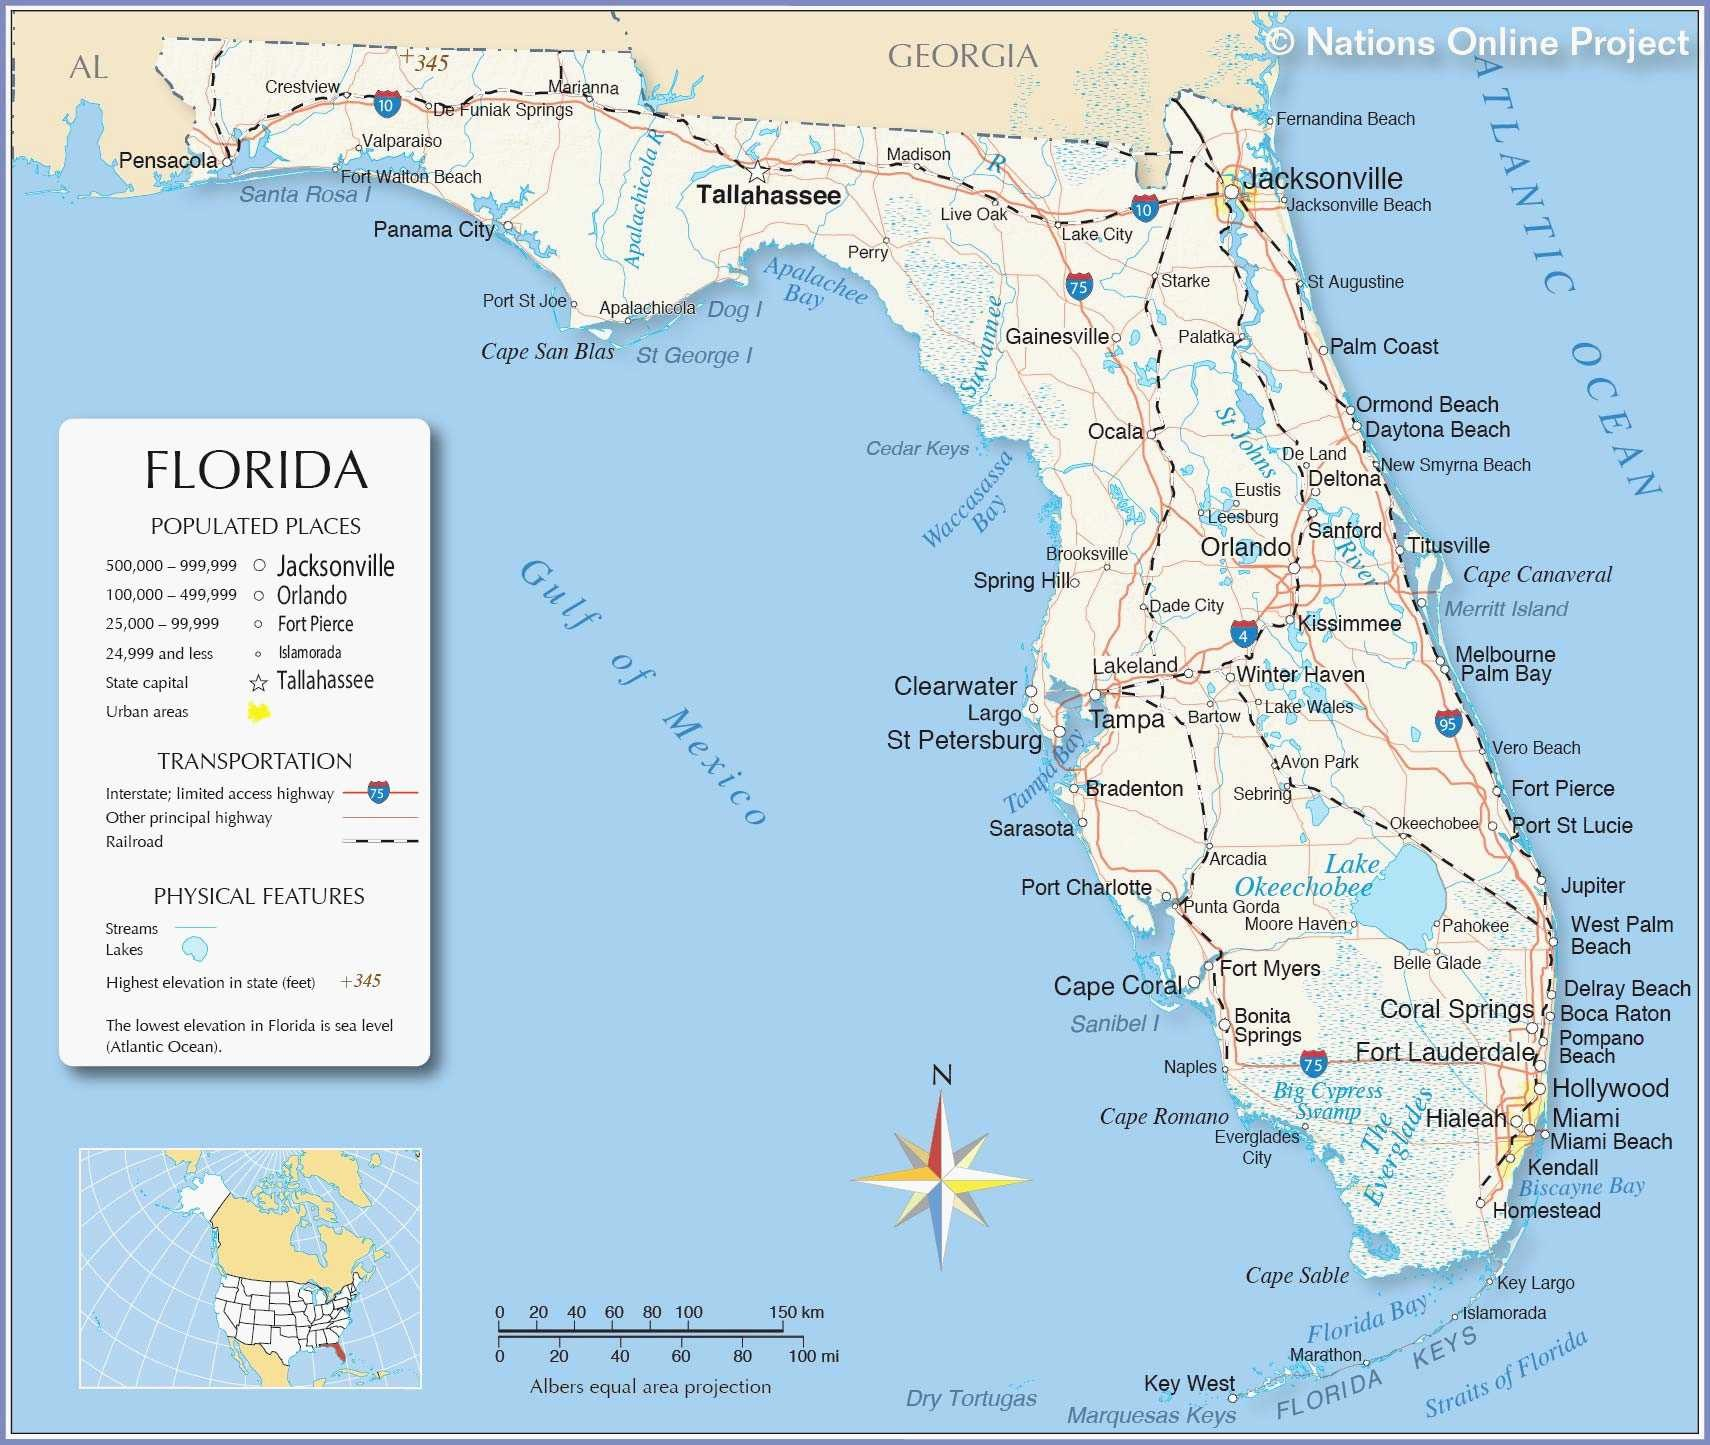 United States Map Of Vacation Spots Save Great Clearwater Beach - Florida Vacation Destinations Map